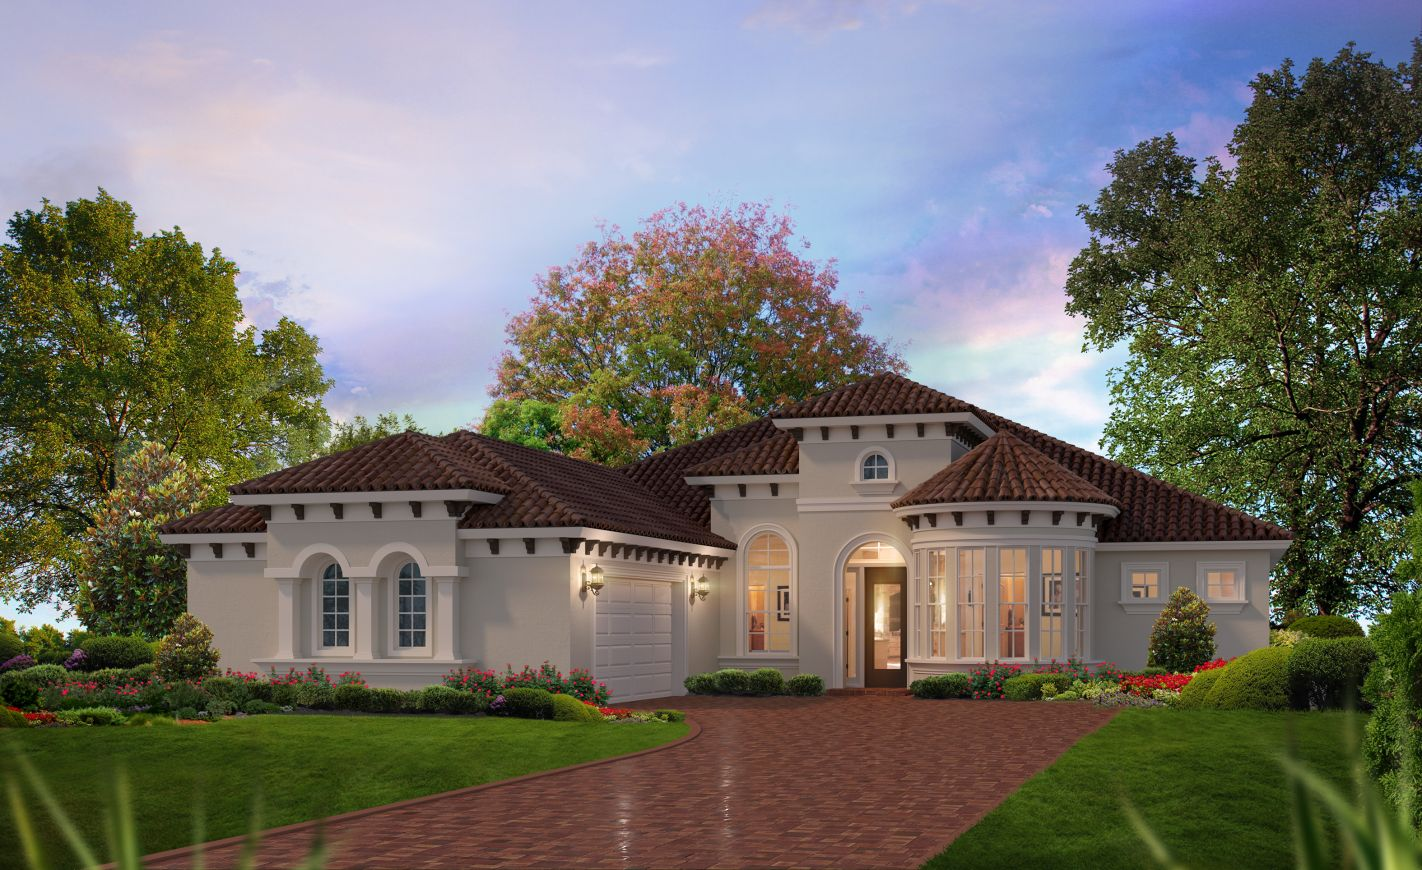 Palm Coast Homes for Sale - The Egret VI at The Conservatory